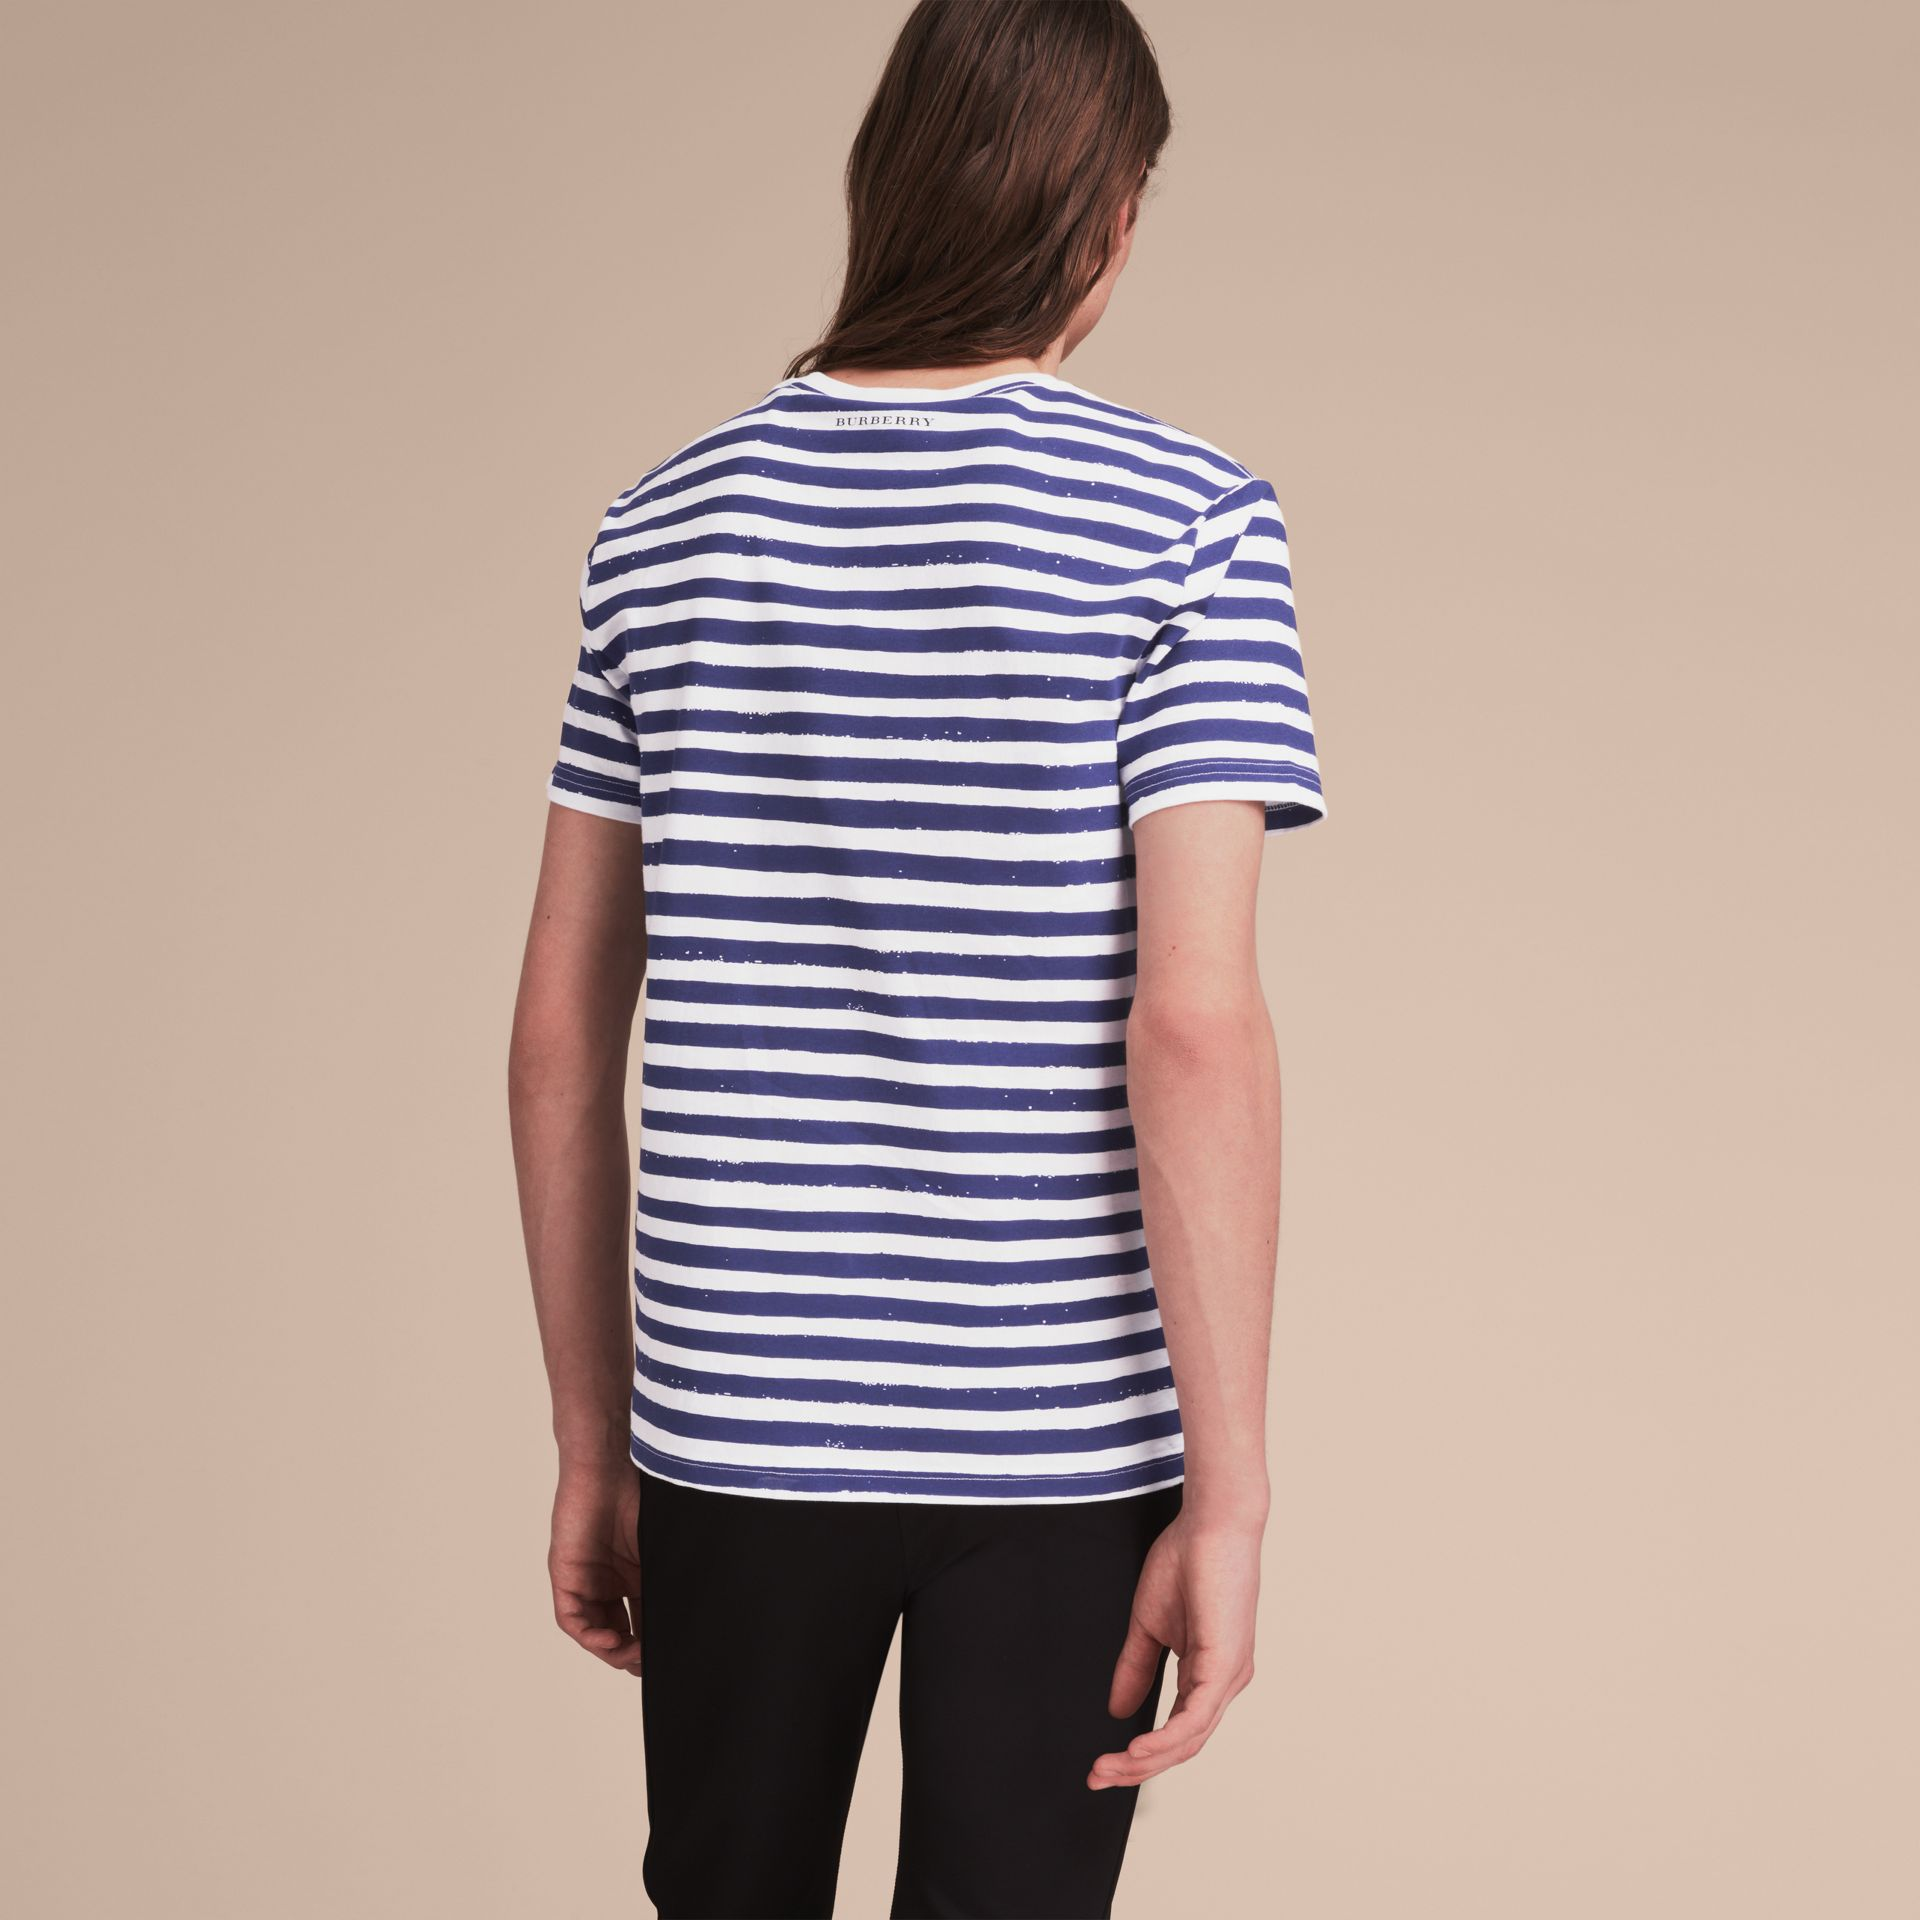 Pallas Heads Print Striped Cotton T-shirt in White - Men | Burberry - gallery image 3